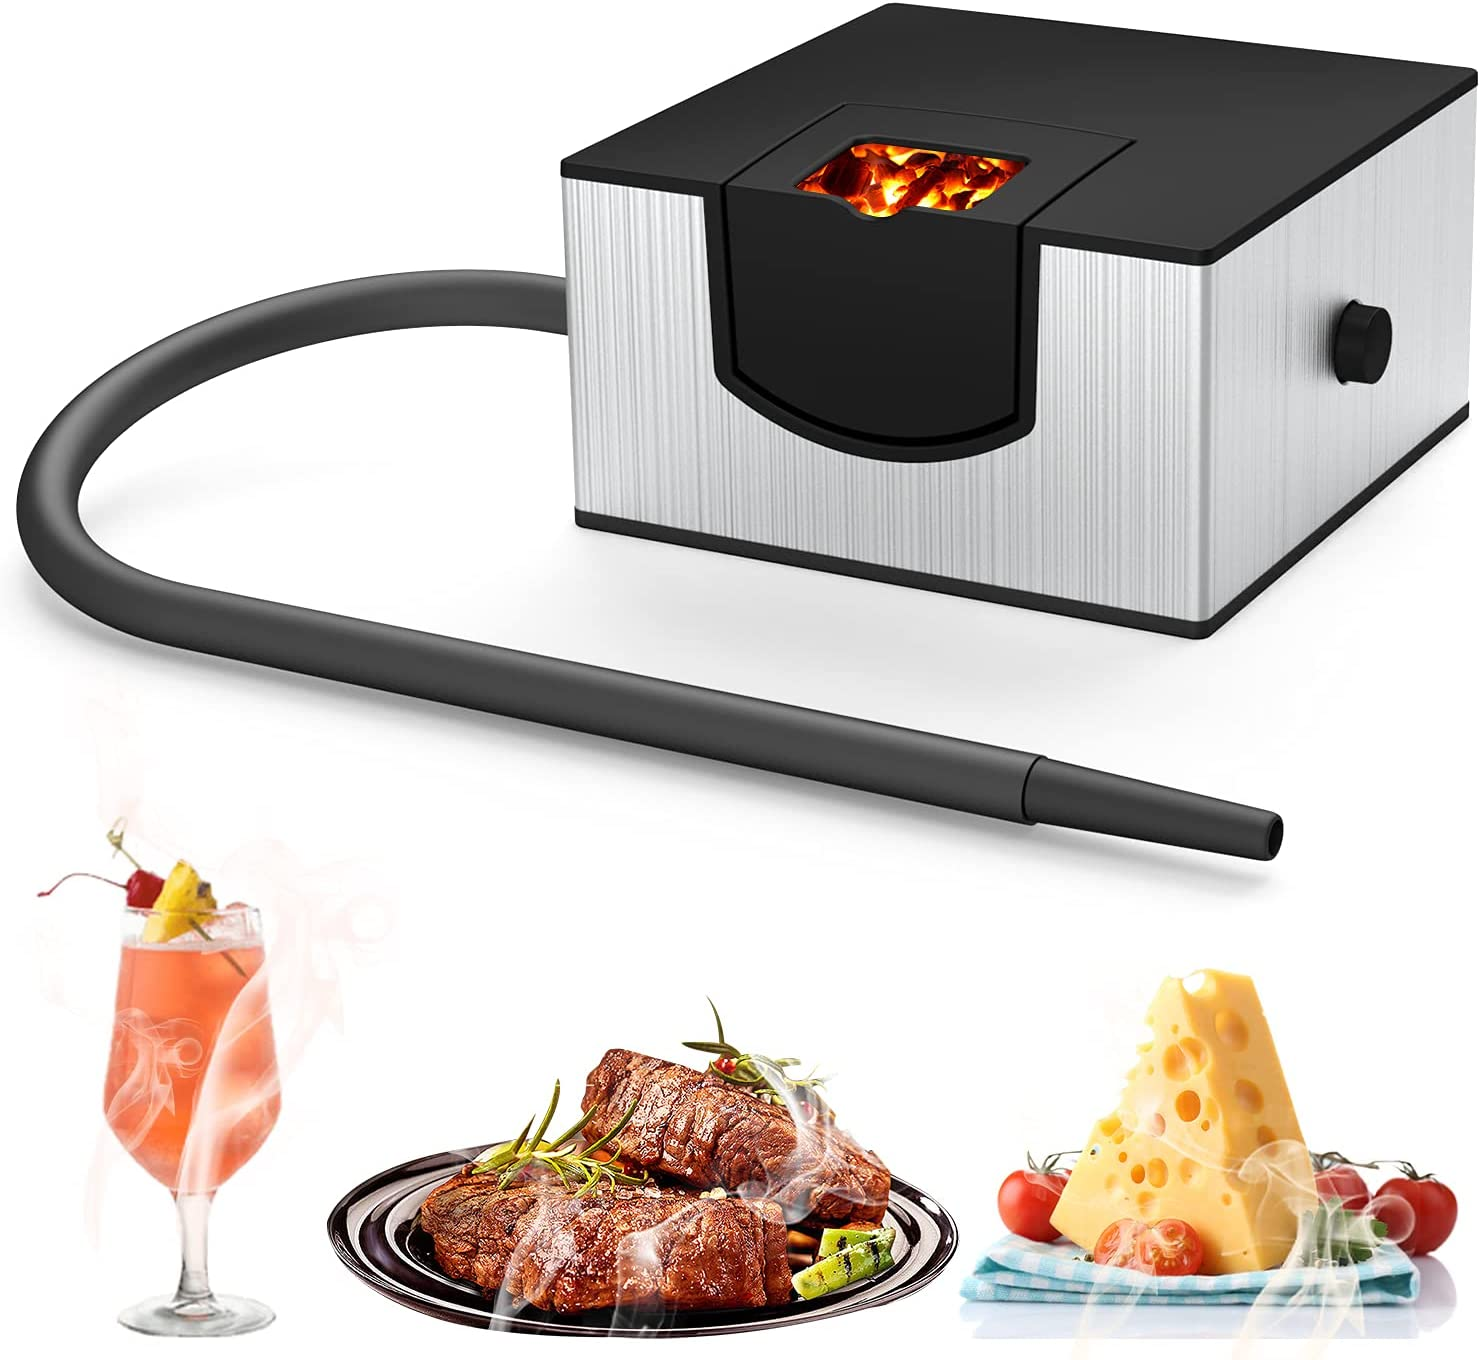 Cocktail Smoker, Wancle Smoking Gun Smoke Infuser for Food Handheld Cold Smoker for Meat, Cheese & Cocktails,Food Smoker Gun for Indoor Kitchen & Outdoor BBQ(Silver)